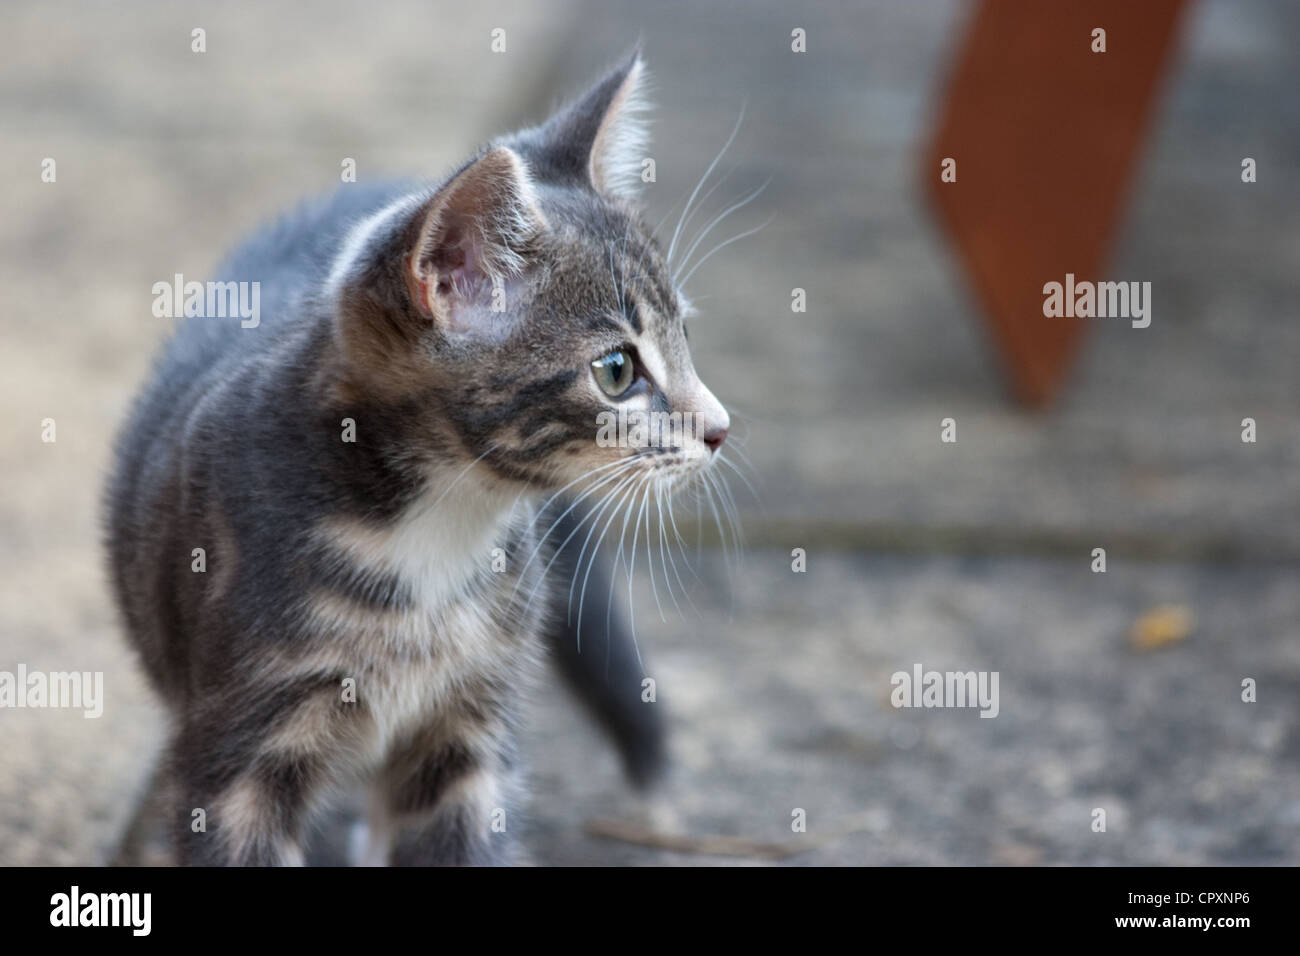 A domestic kitten standing alert on a paved garden area - Stock Image